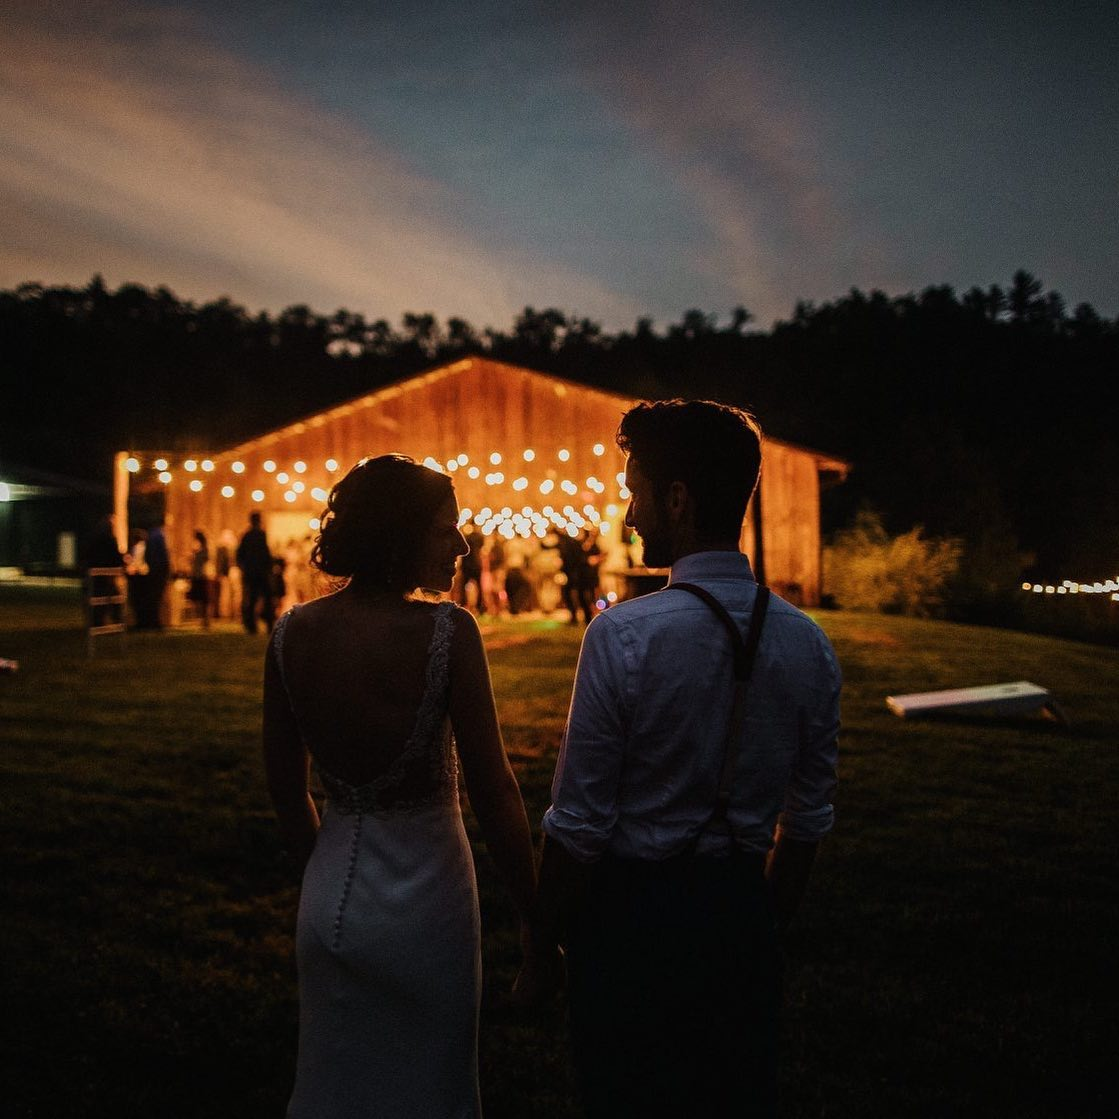 Silhouette of a bride and groom holding hands in front of the wedding venue